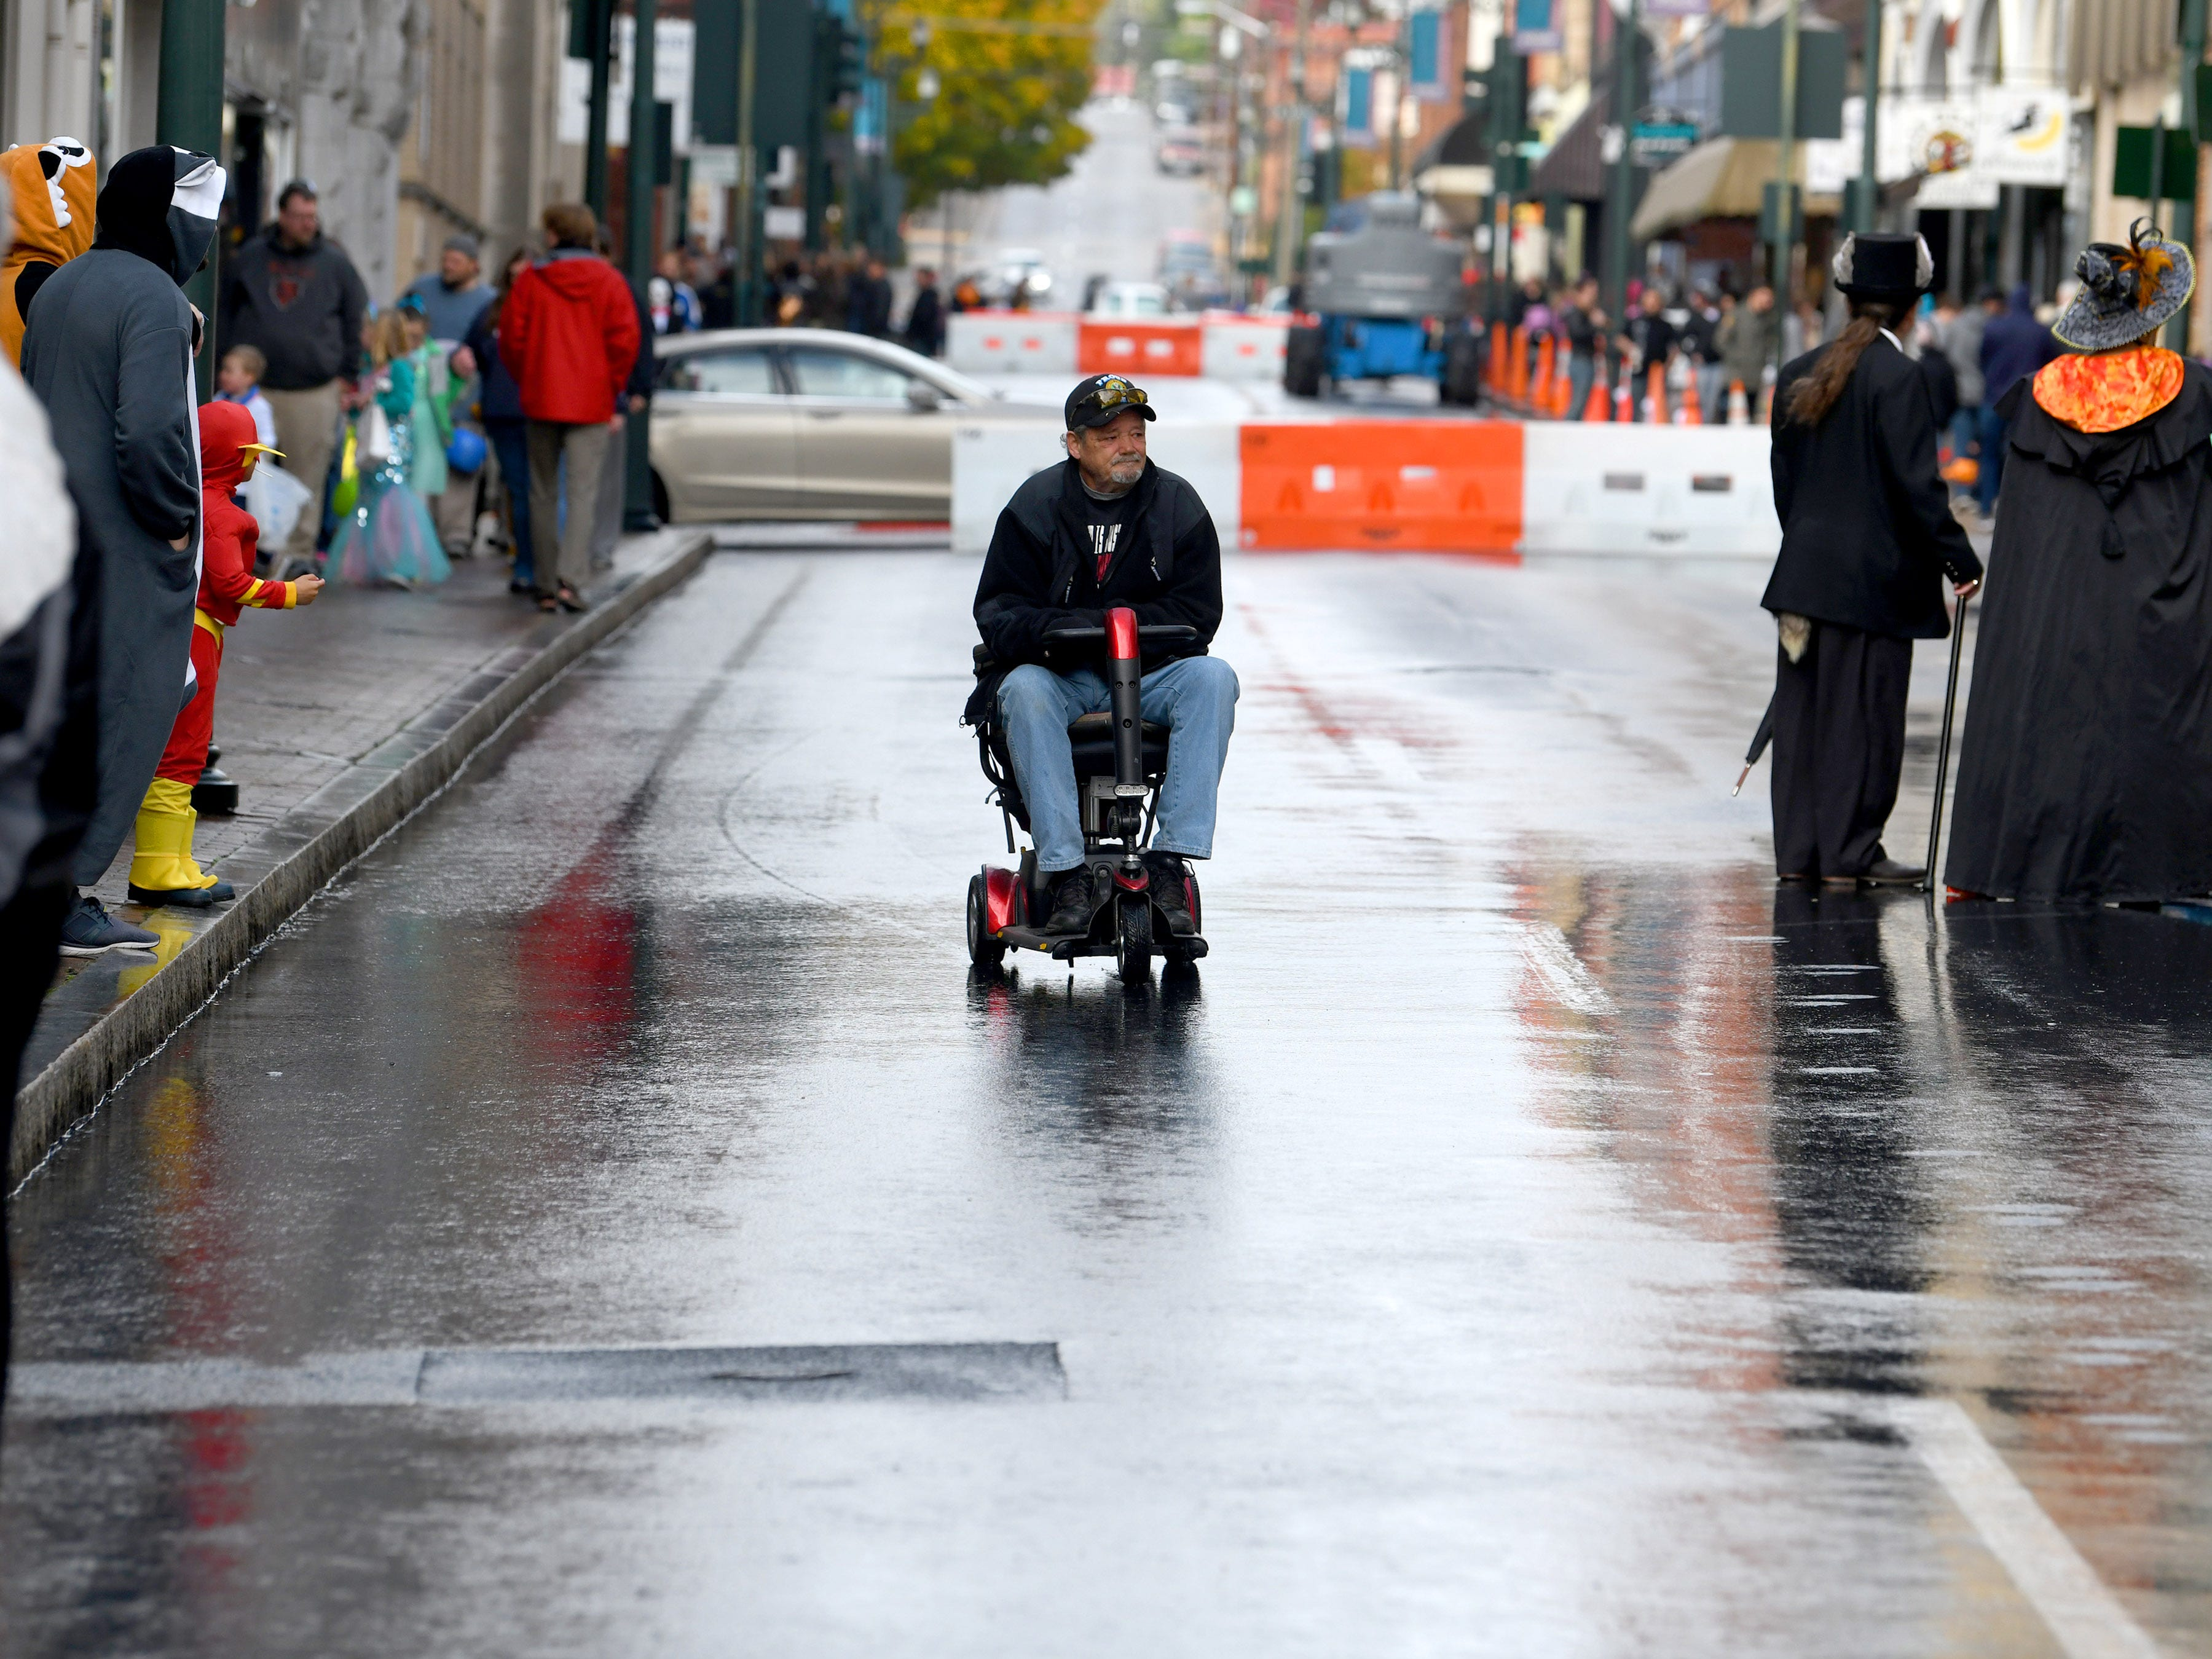 A man on a scooter takes advantage of the closed streets during the annual downtown trick-or-treating event in Staunton on Saturday, Oct. 27, 2018.